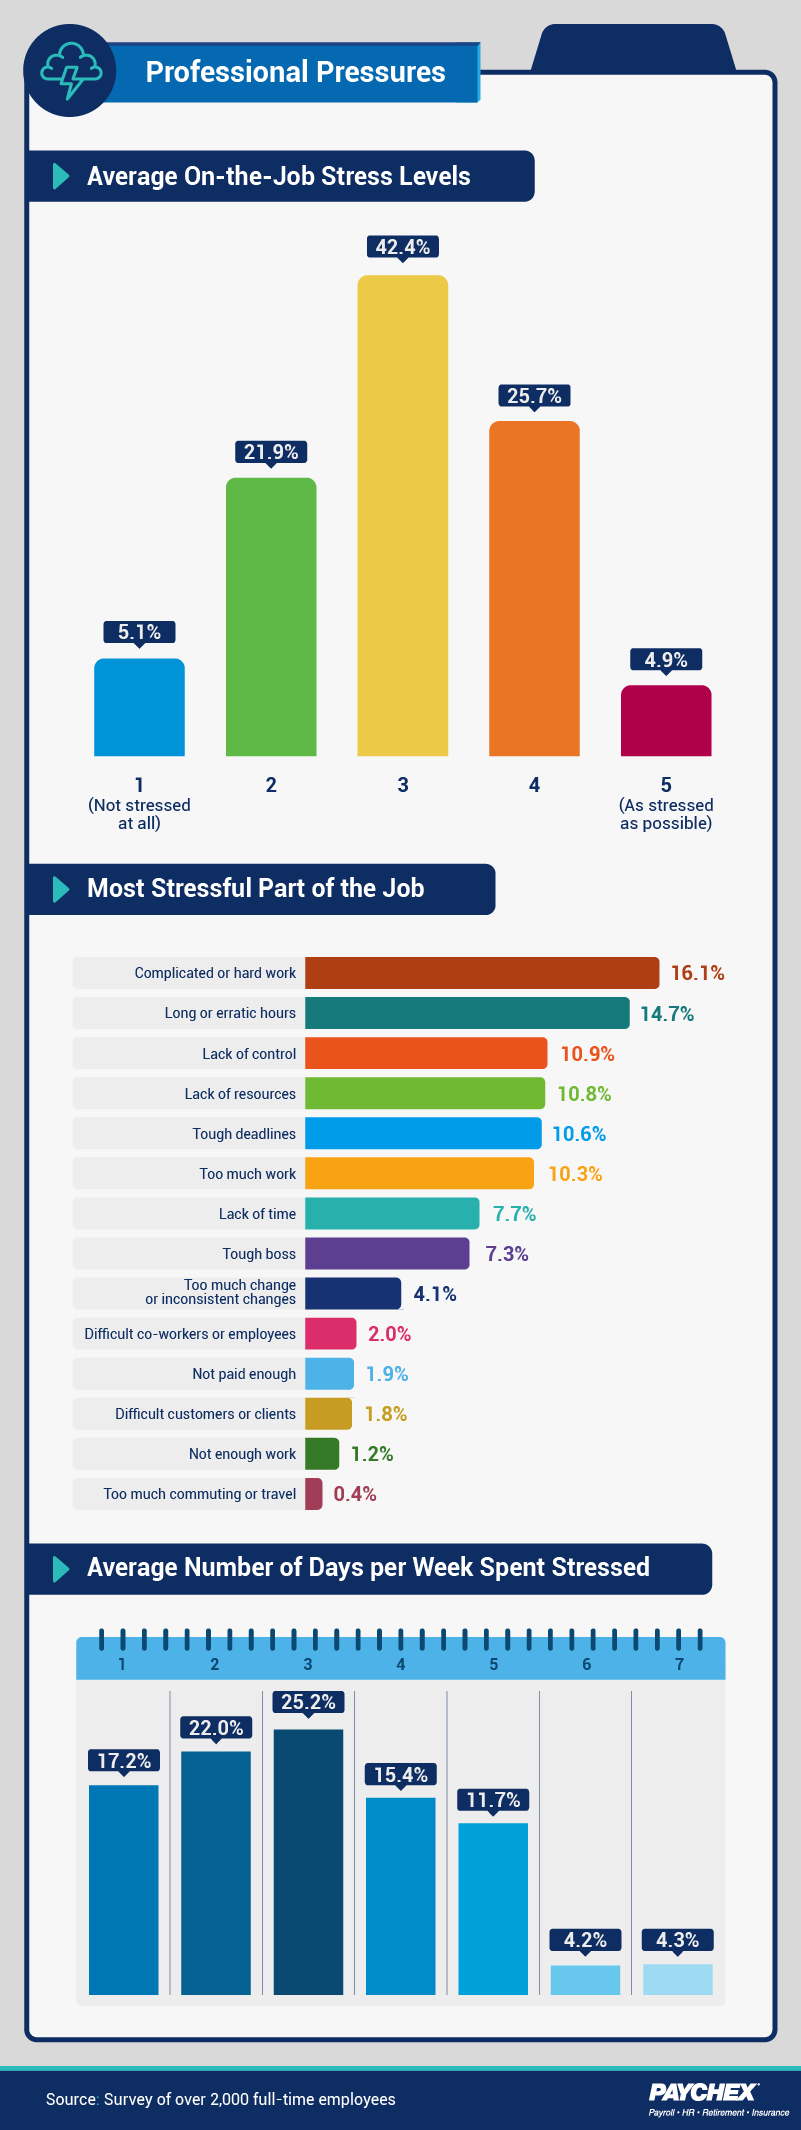 Survey responses about average stress levels at work, and workplace stressors.